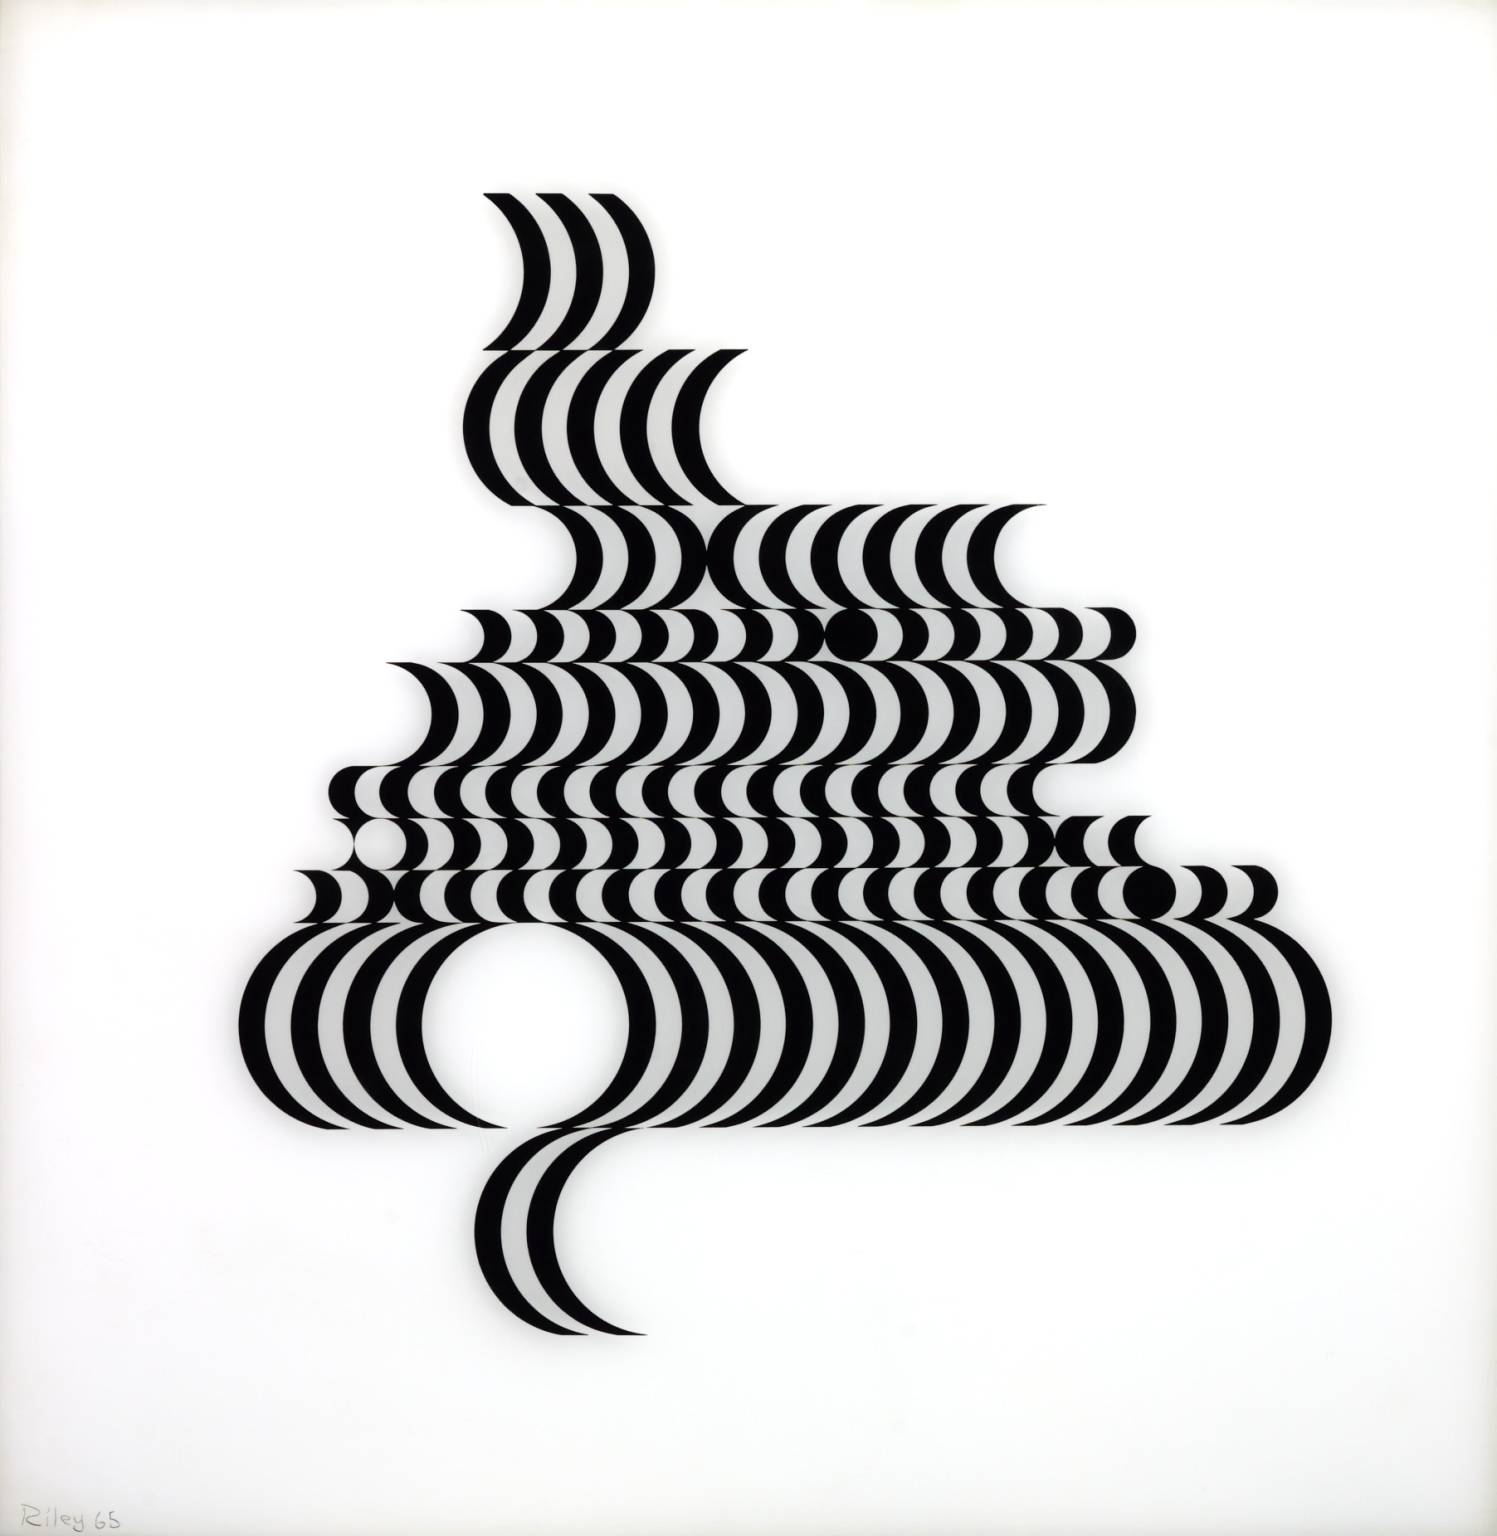 The Work of Bridget Riley: Juxtapoz-BridgetRiley18.jpg